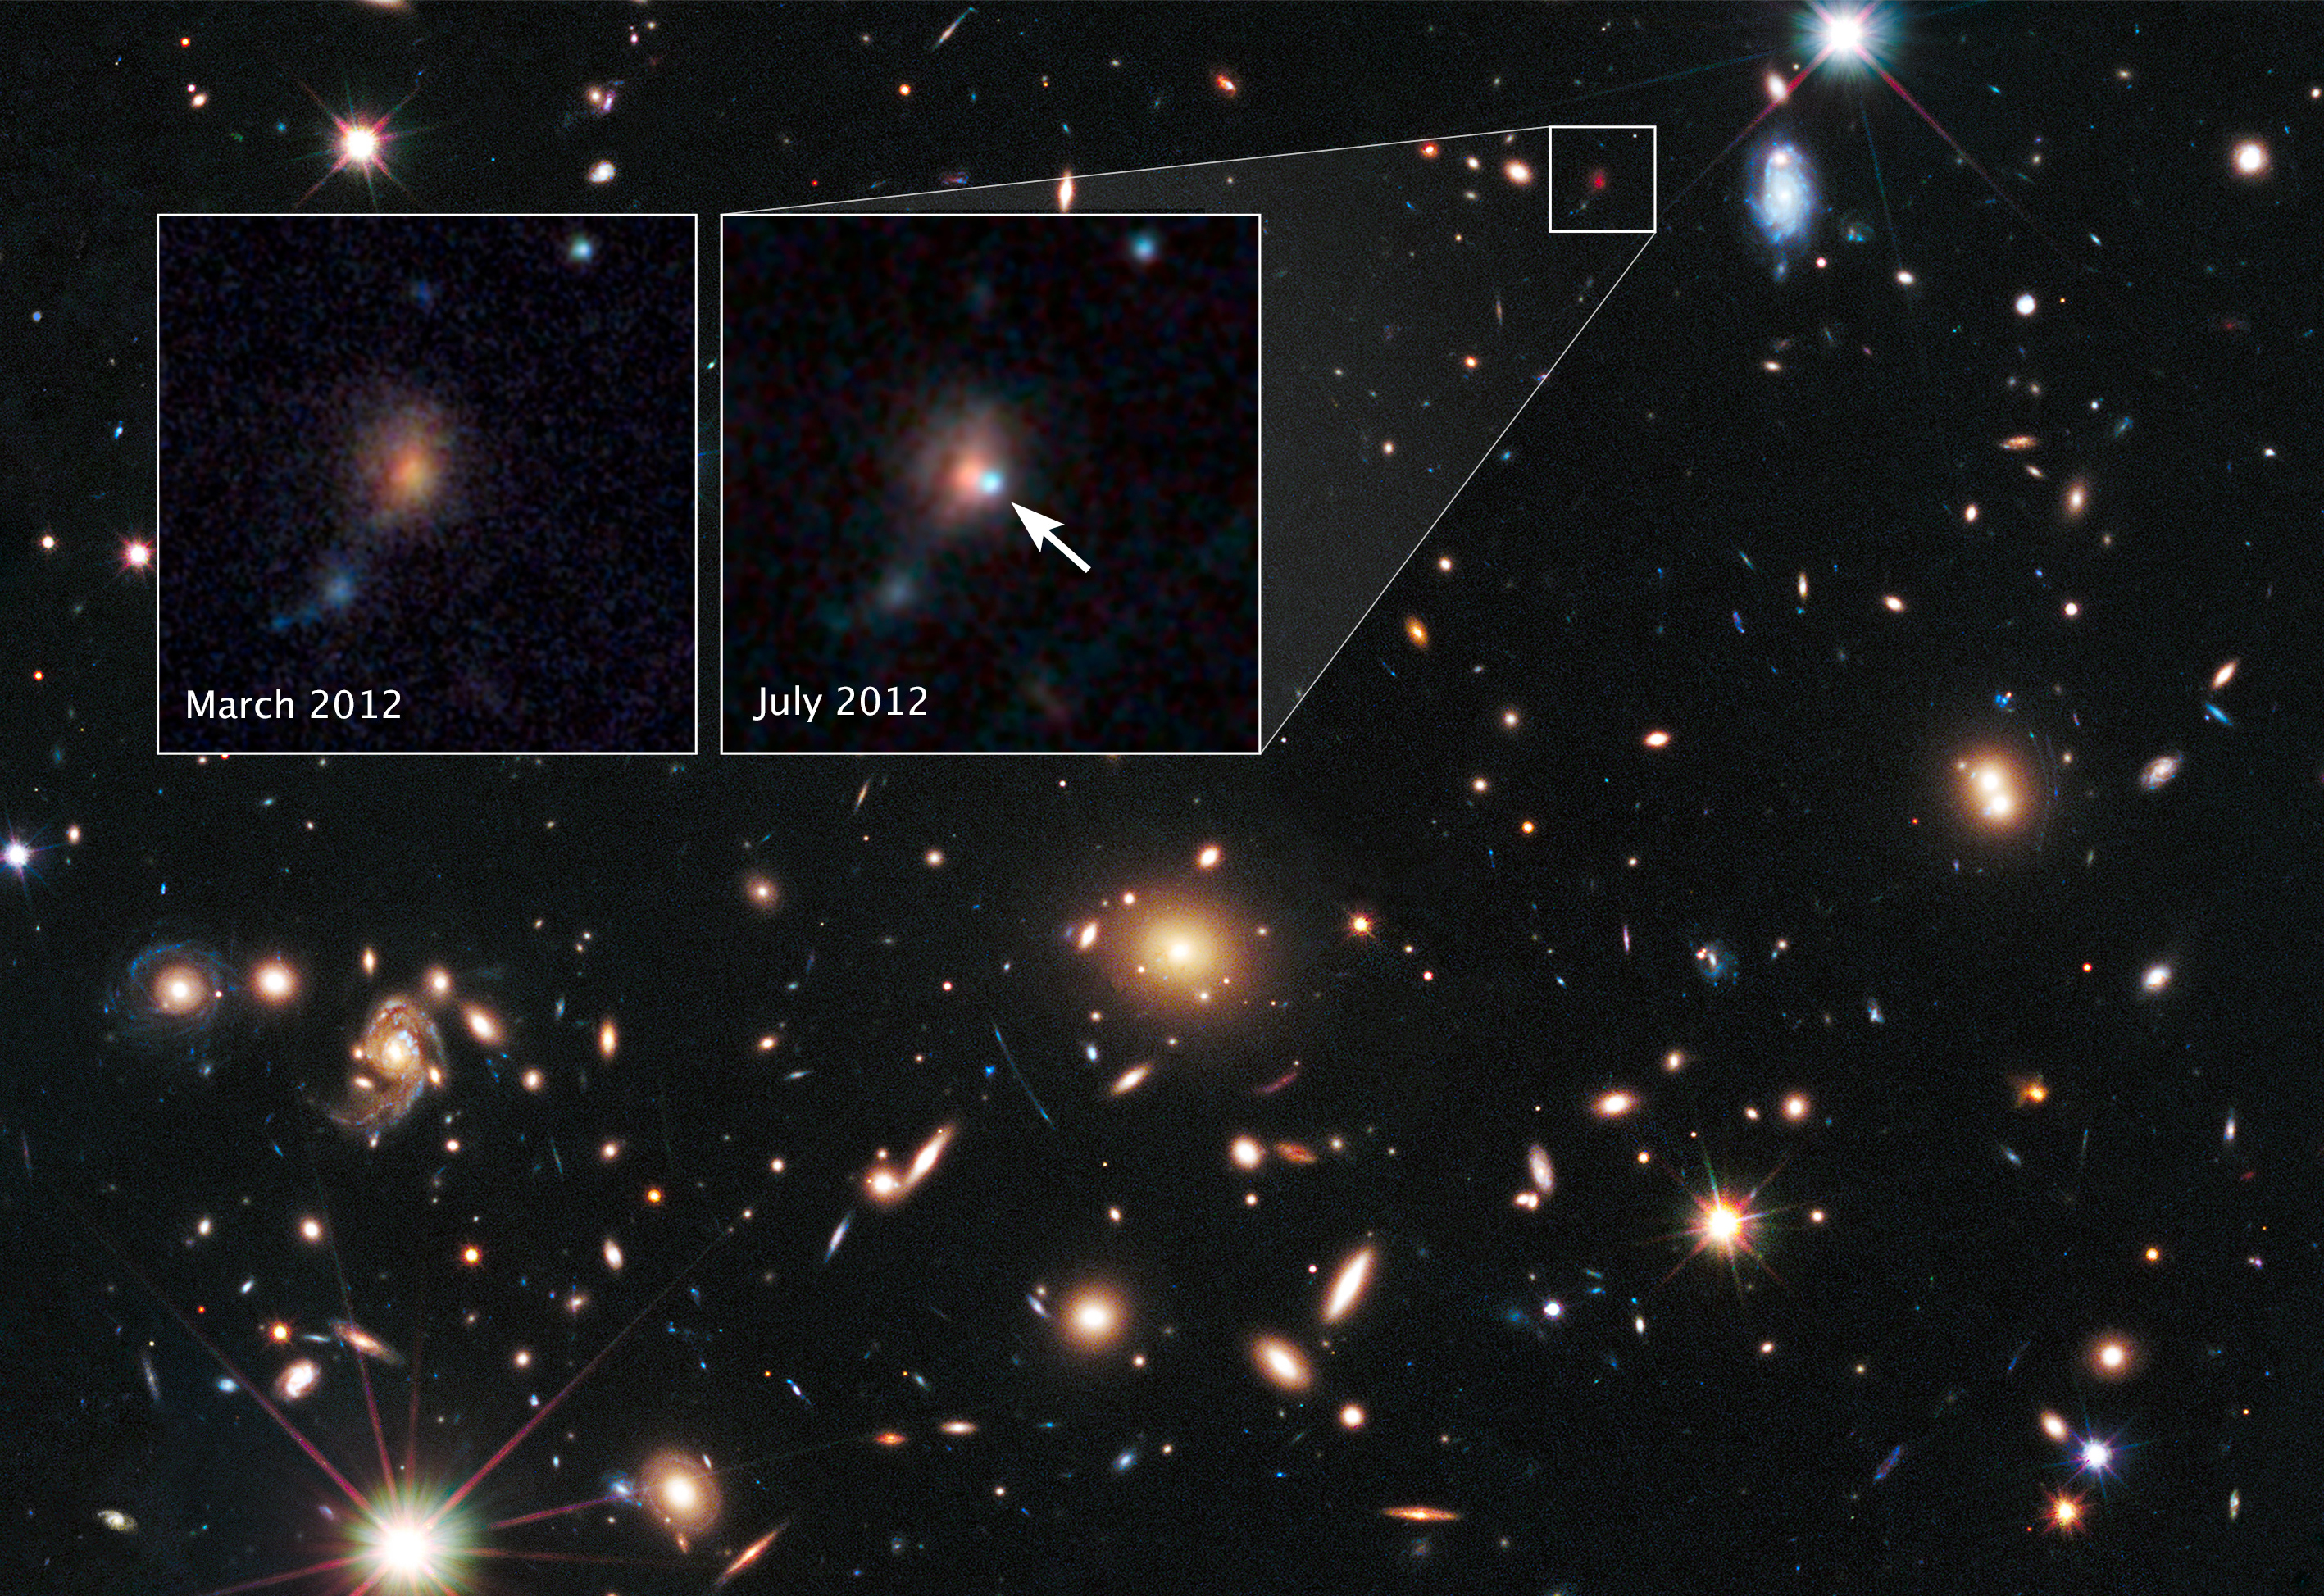 Supernova Hubble NASA (page 2) - Pics about space